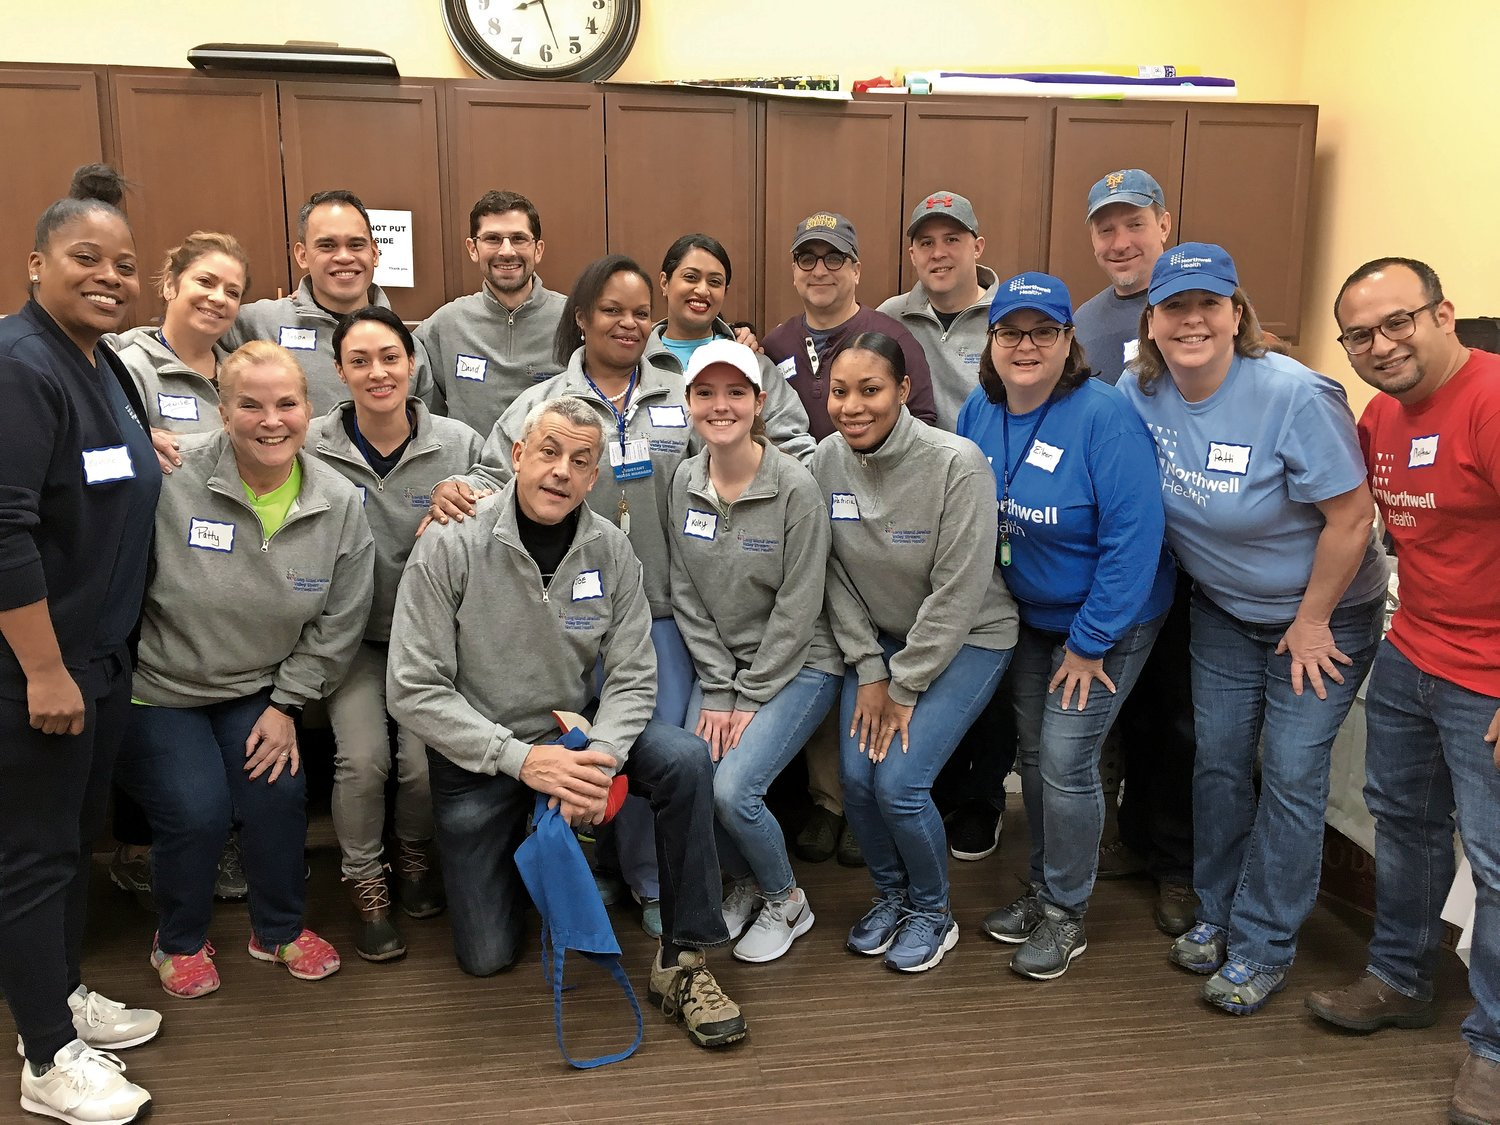 More than 20 Long Island Jewish Valley Stream employees volunteered at the Mary Brennan INN on Jan. 10.